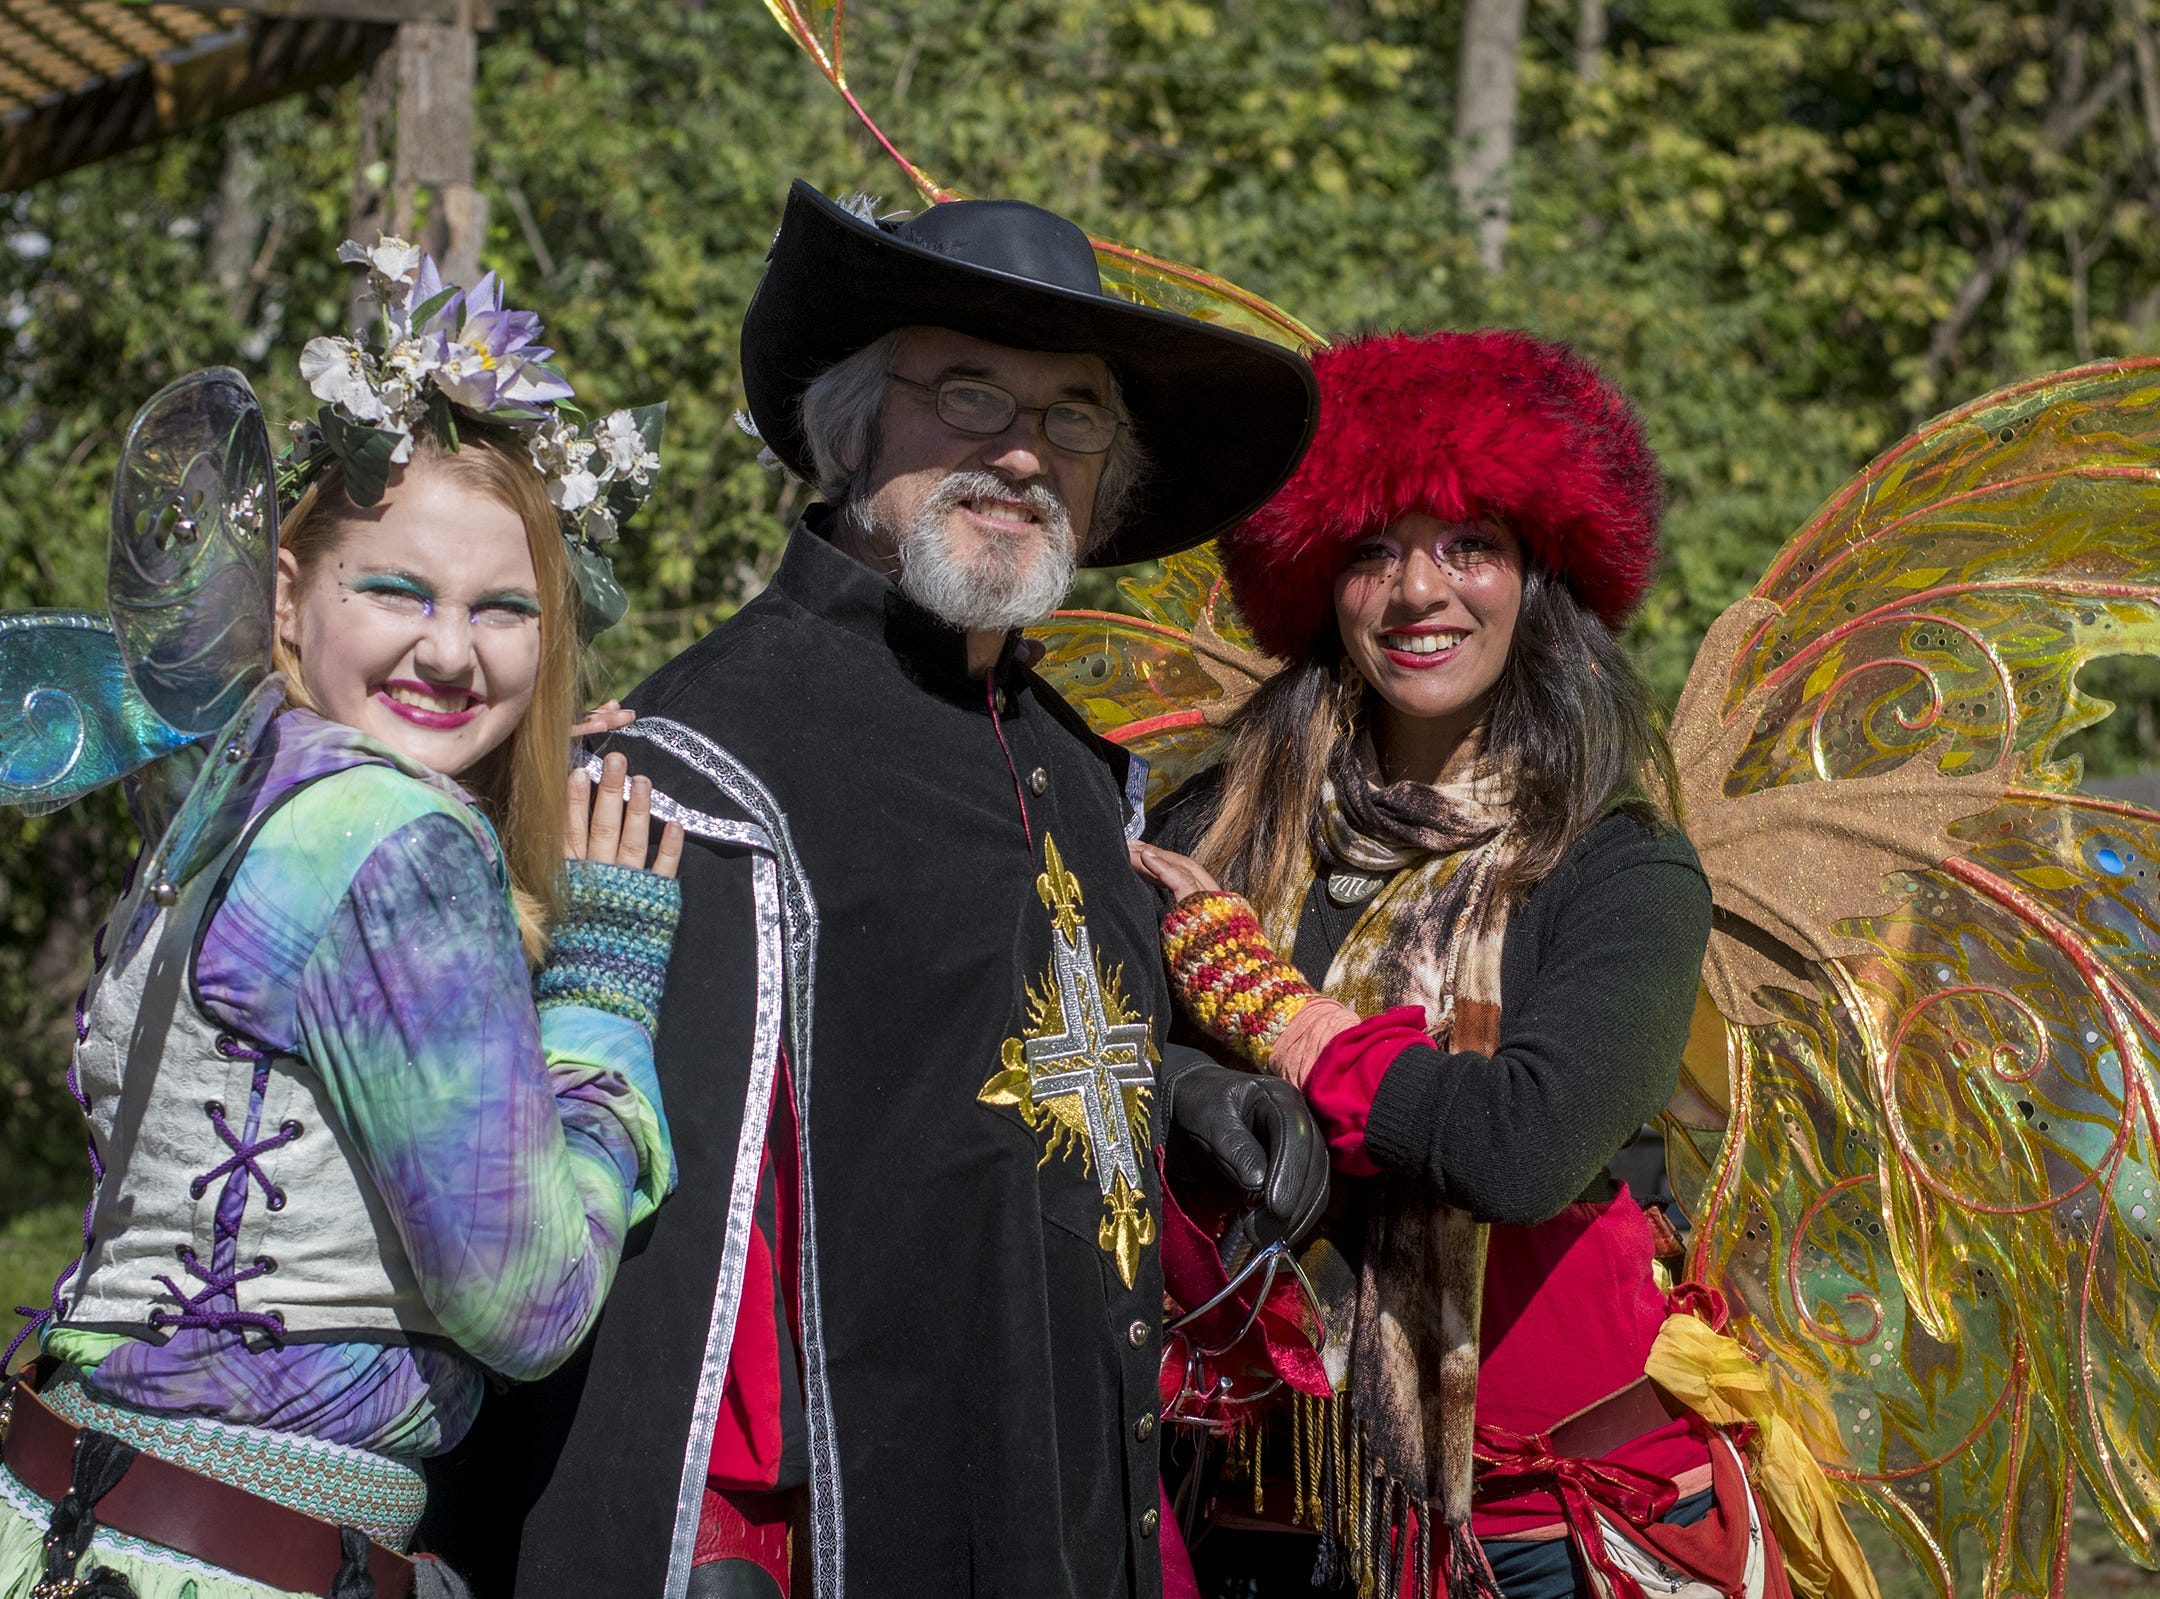 Jingles, Mike and Spark the Fairy attend Romance Weekend at the Ohio Renaissance Festival Sunday, October 21, 2018 in Waynesville, Ohio.